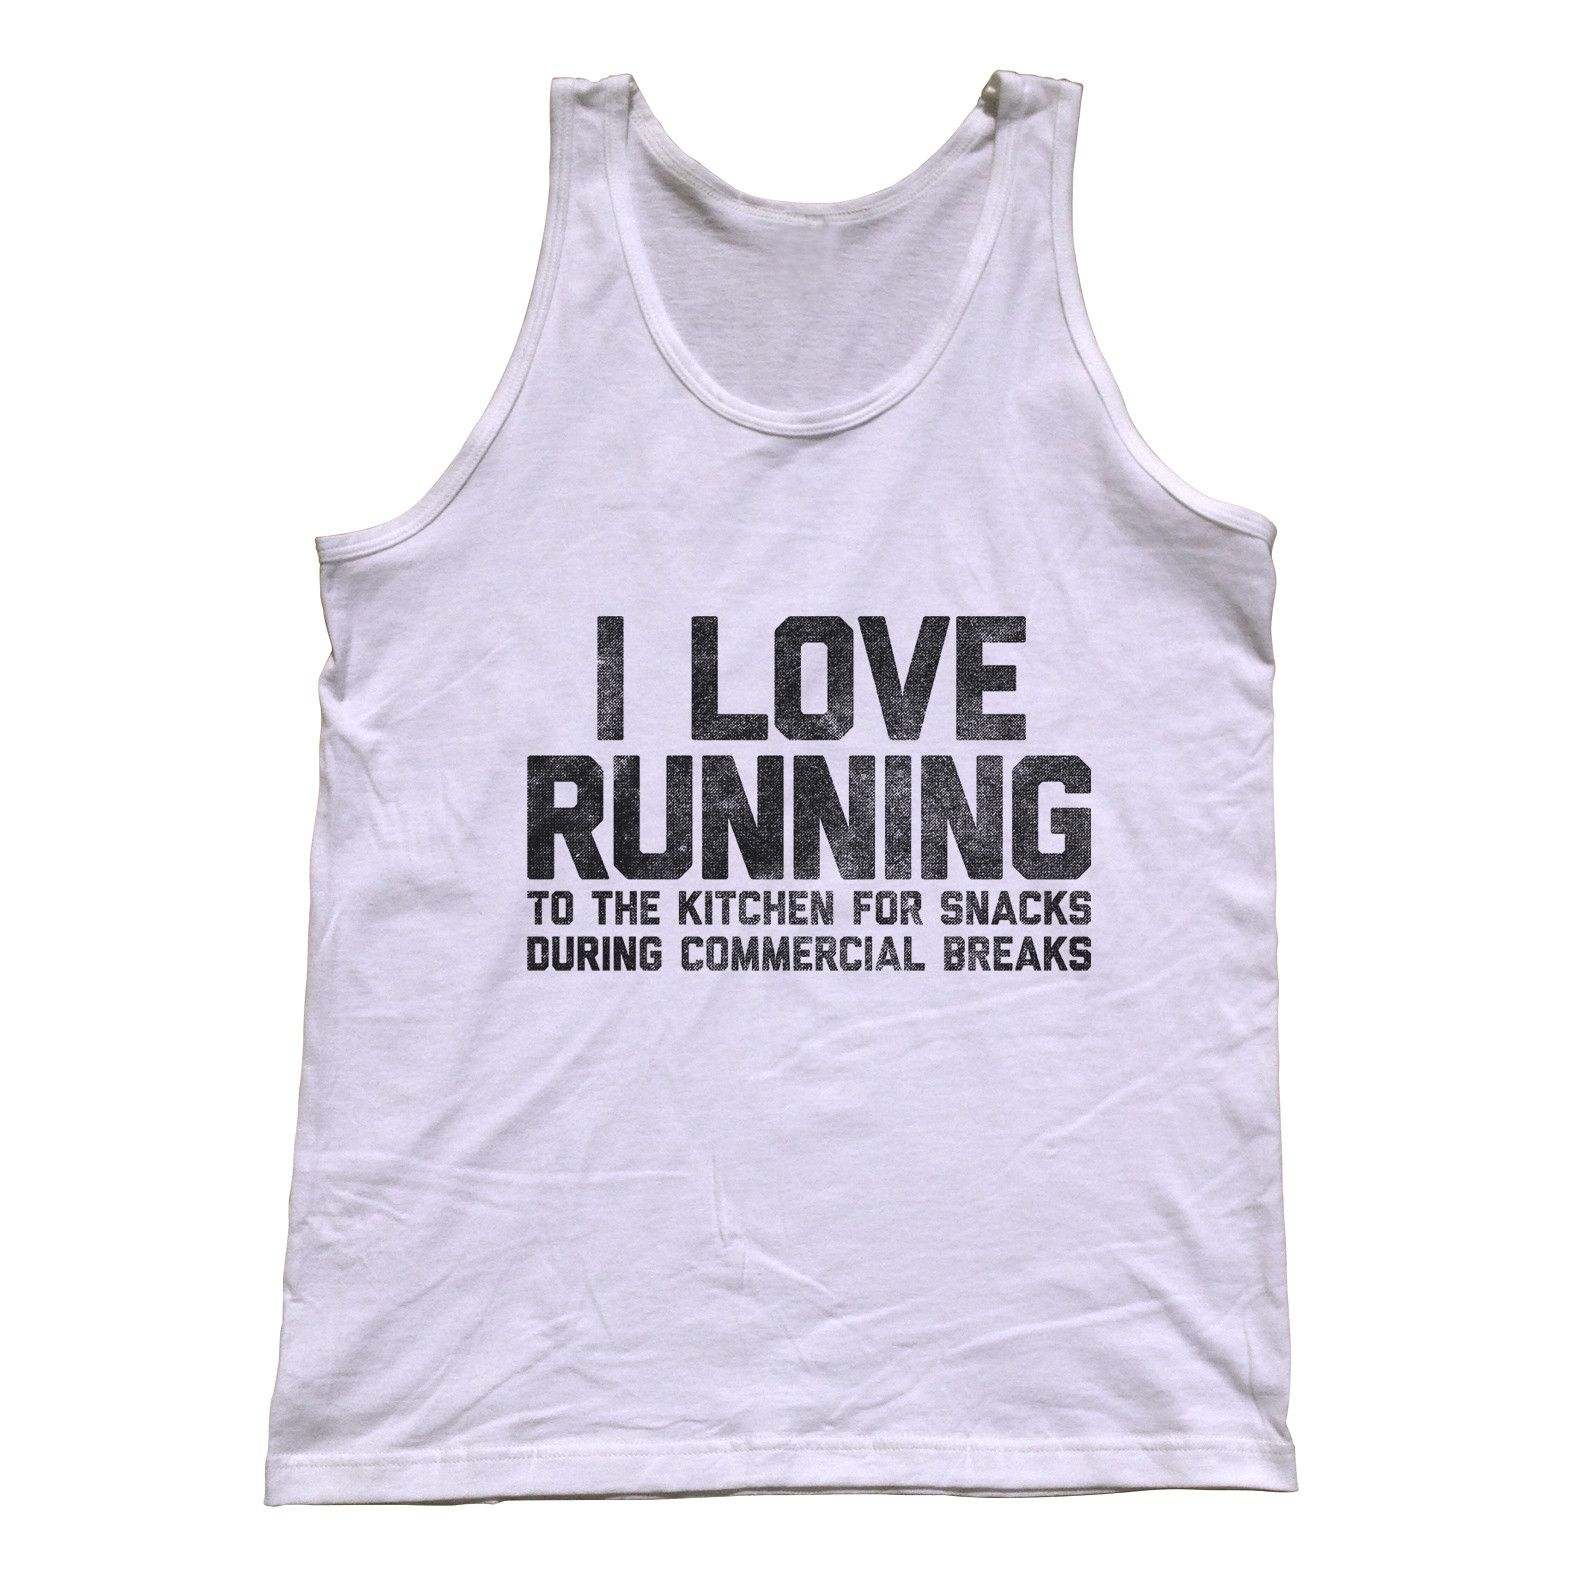 uni i love running to the kitchen for snacks tank top tops